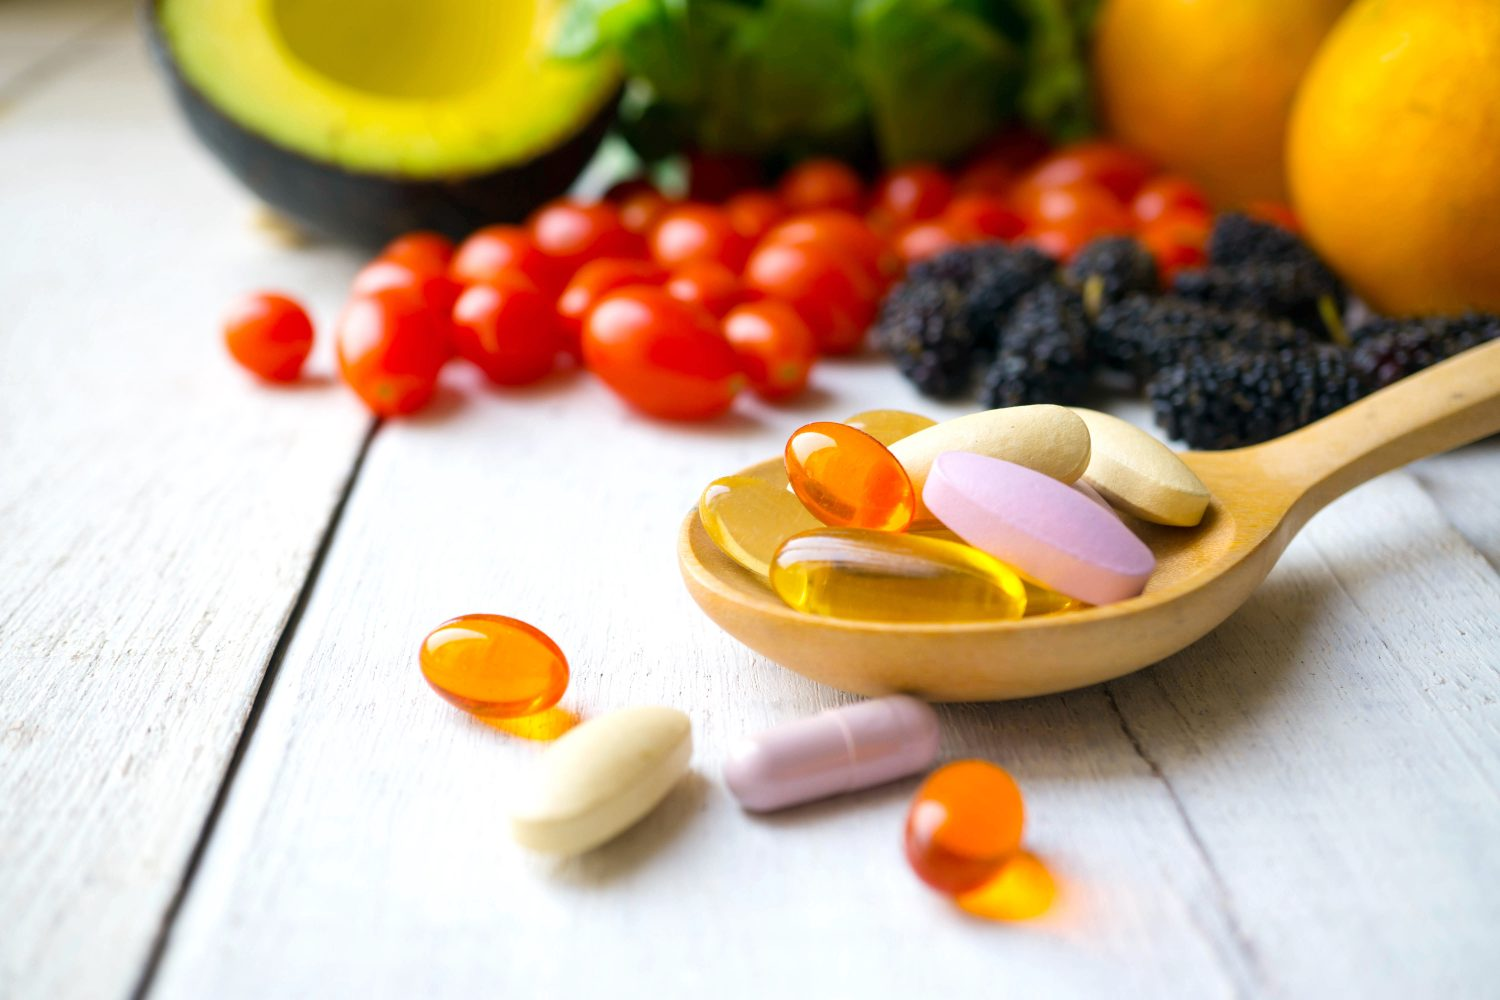 Tips For Choosing the Right Supplements - Featured Image